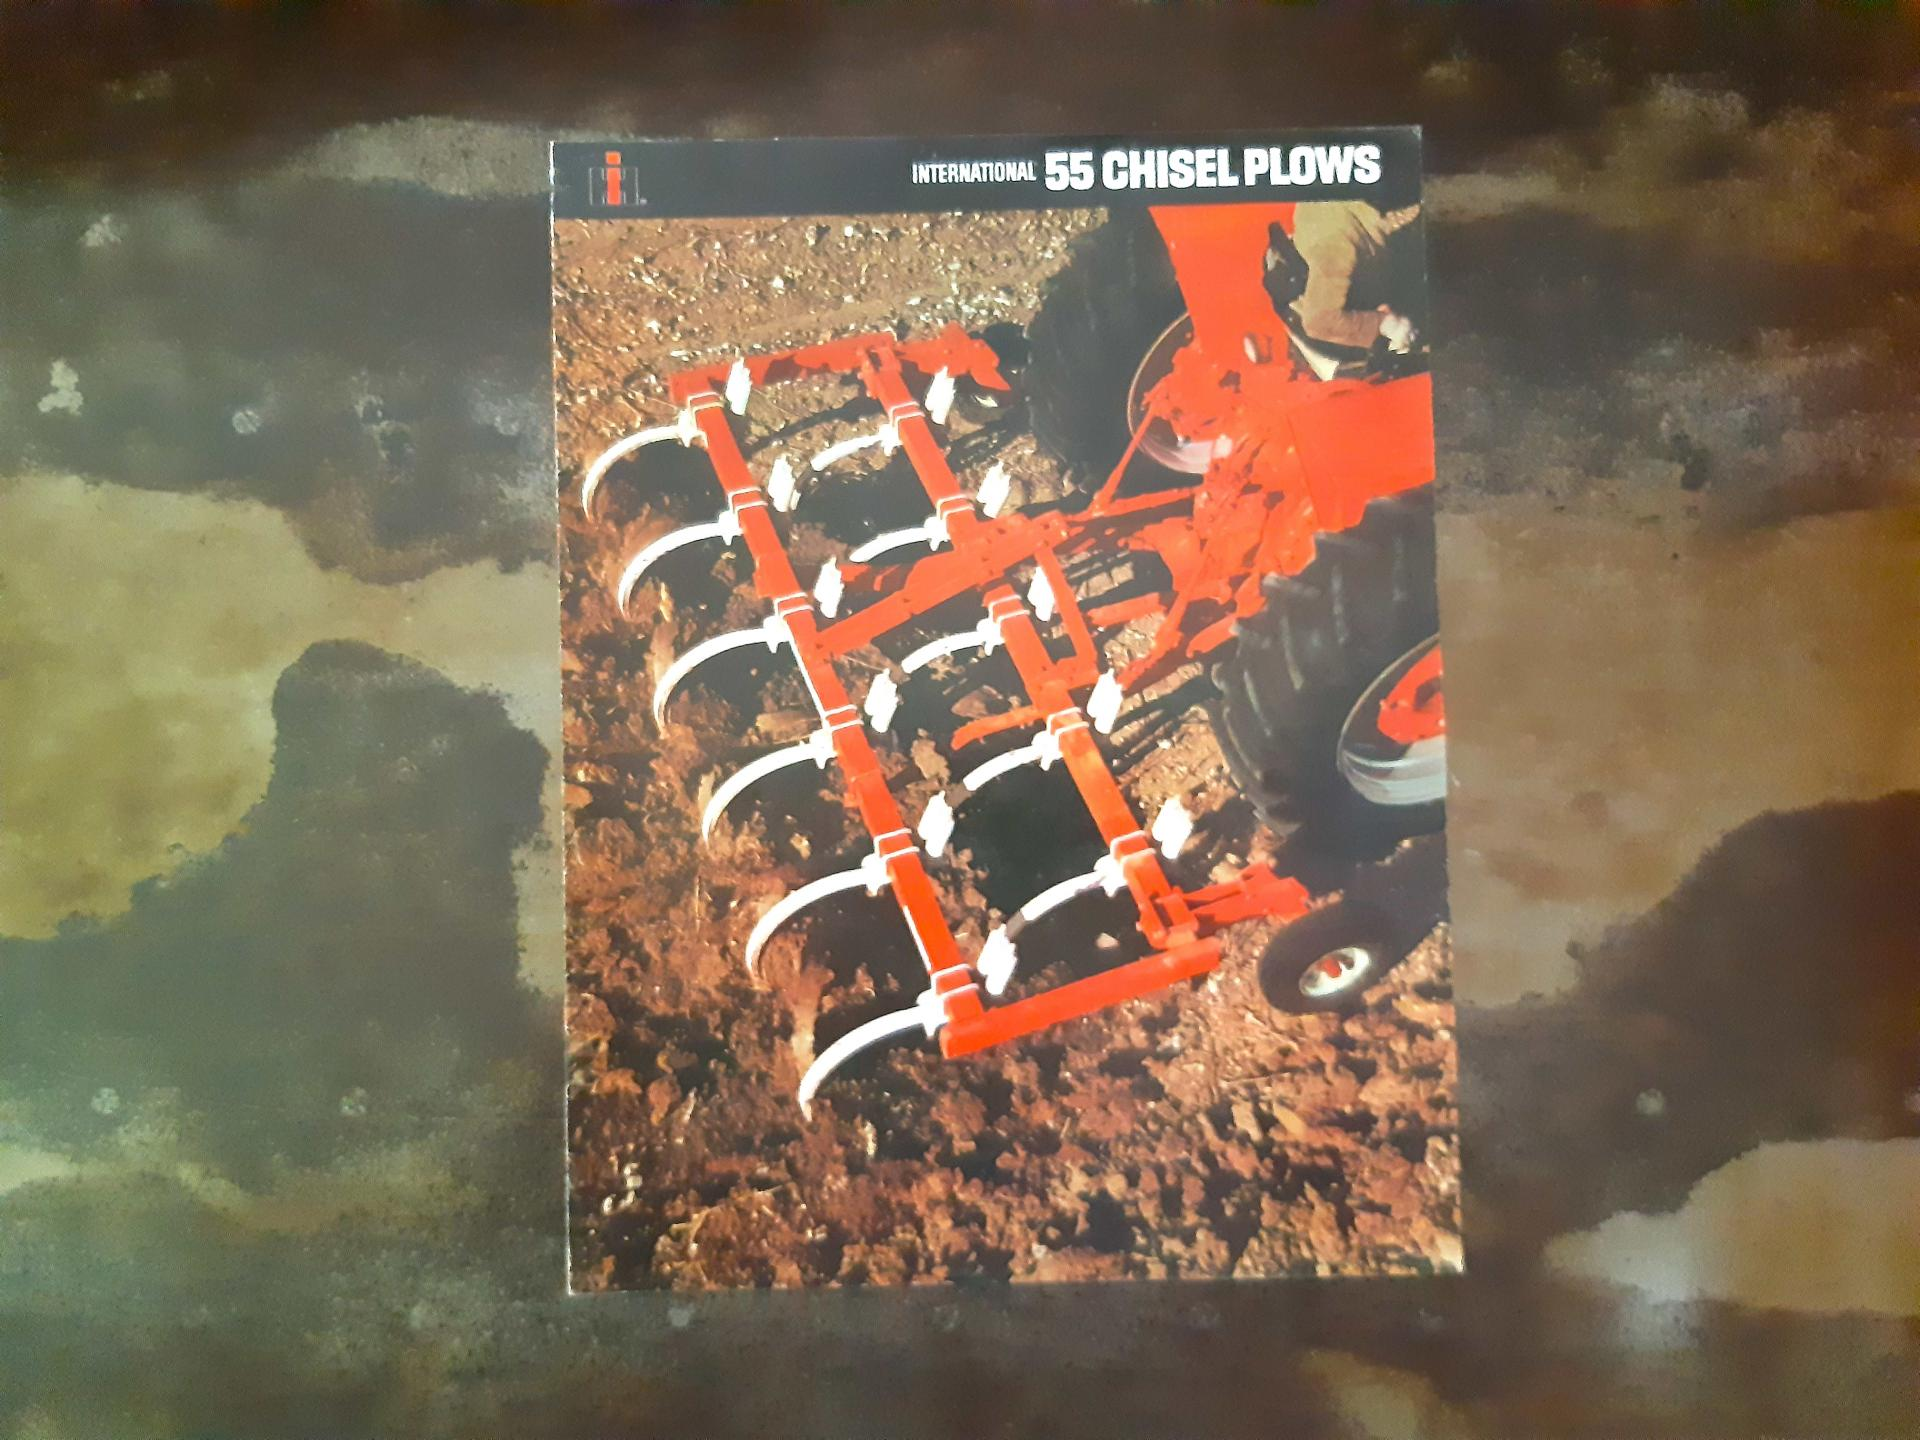 Case ih outillage chisel plows